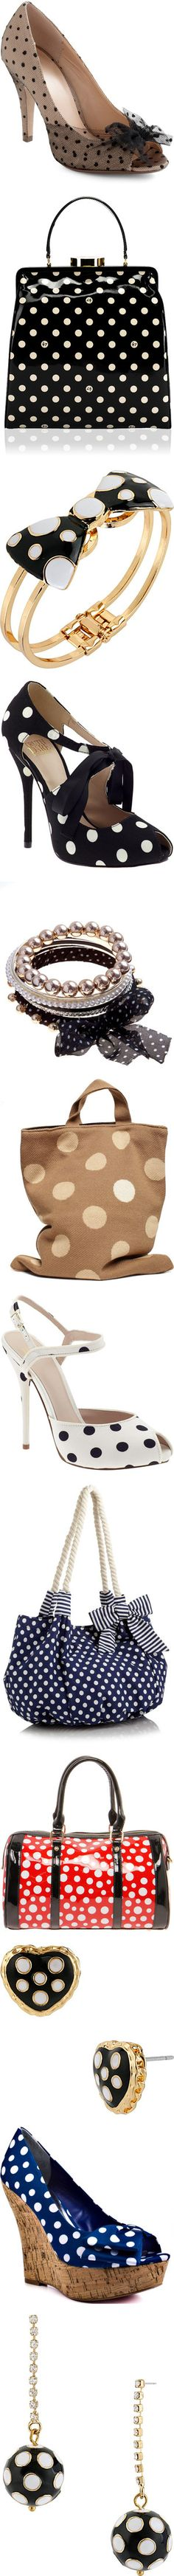 """Polka Dots......"" by mzmamie ❤ liked on Polyvore"